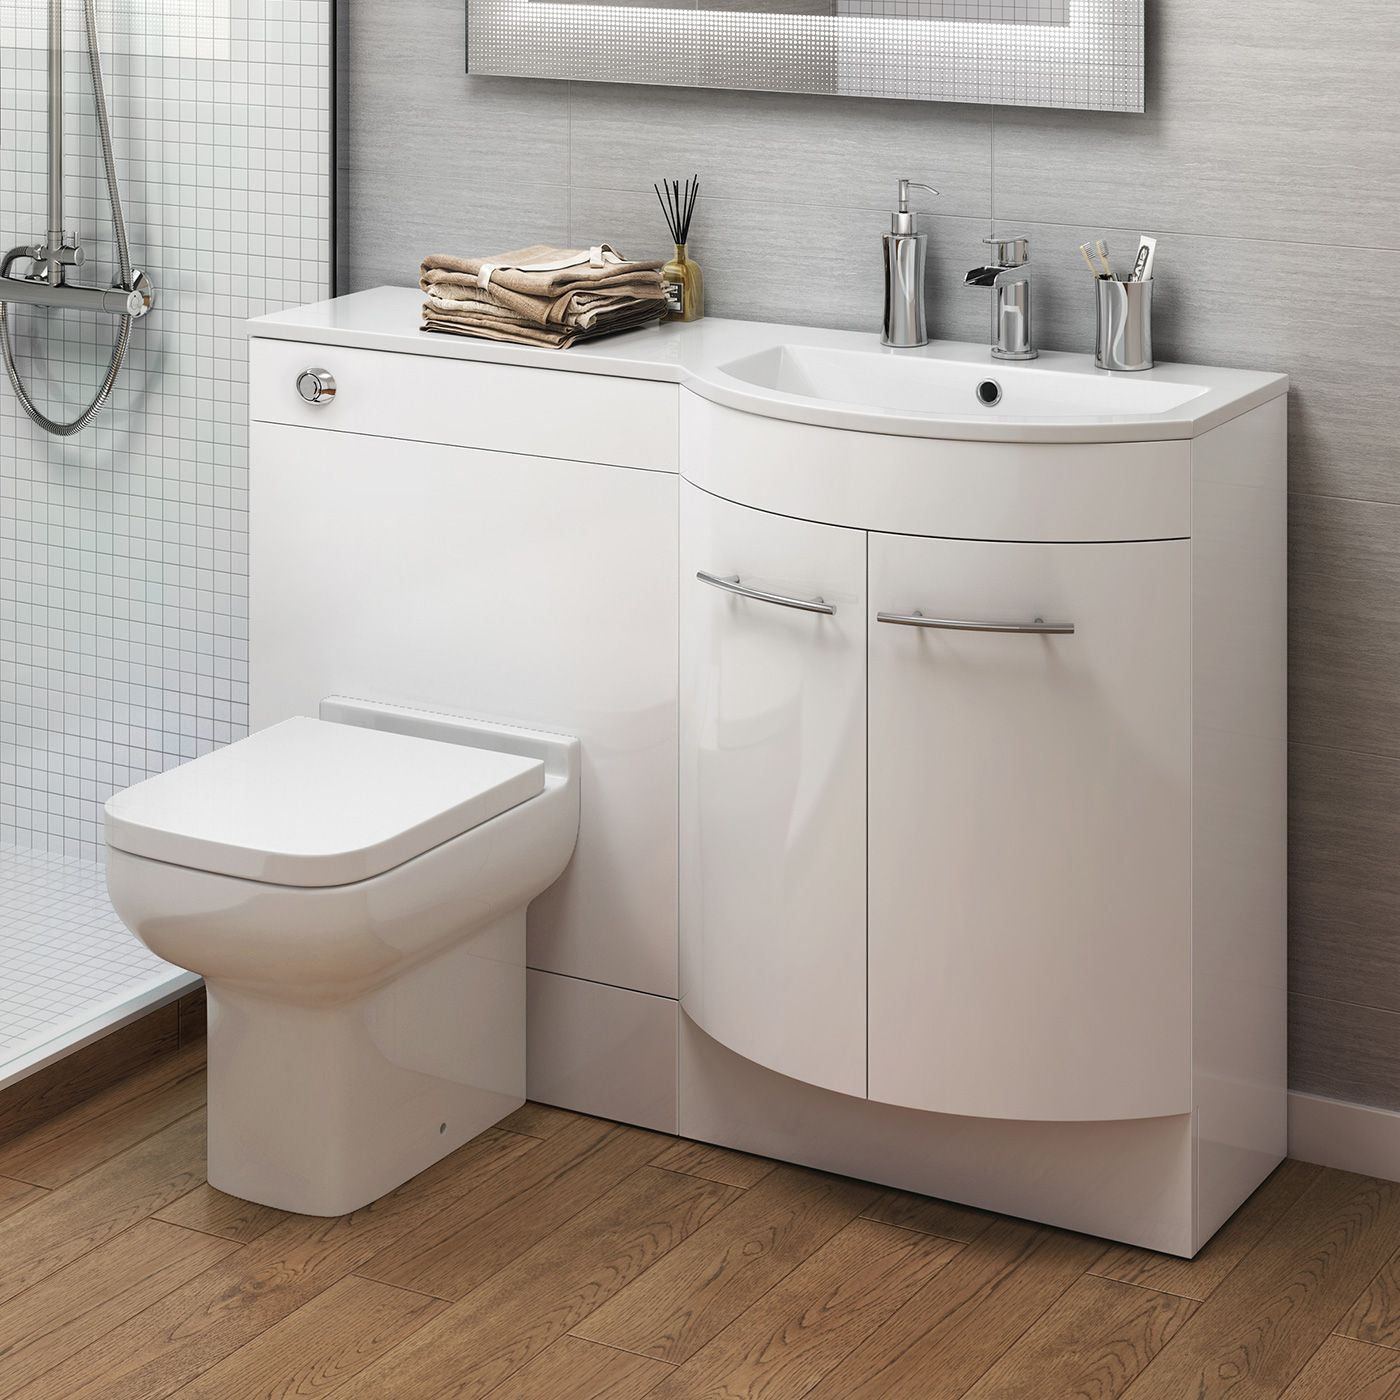 1200m Alexis White Gloss Right Hand Vanity Unit Short Projection Pan Bathroom Storage Units Bathroom Sink Units Toilet And Sink Set